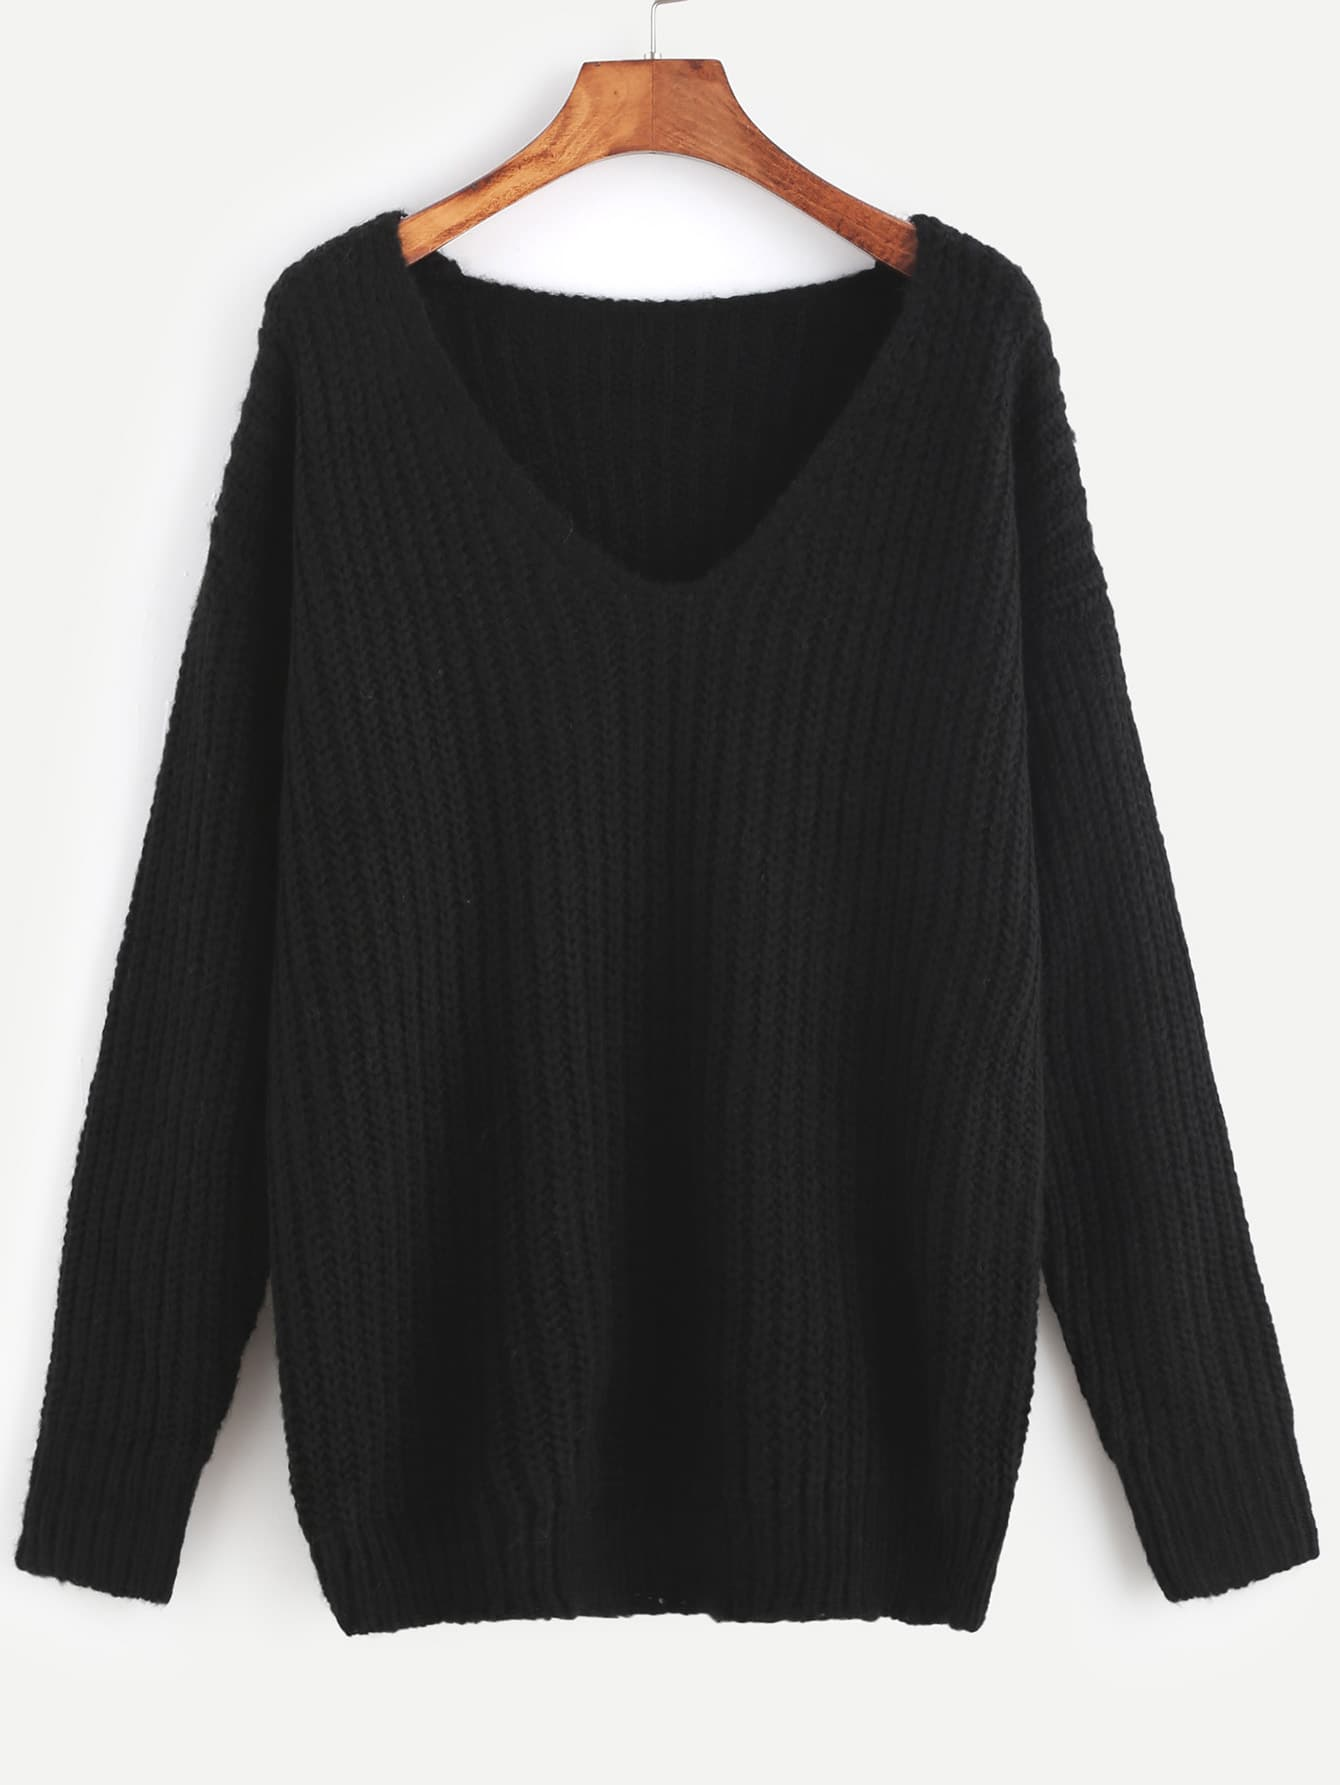 Black Ribbed Knit V Neck Drop Shoulder Sweater sweater161104401